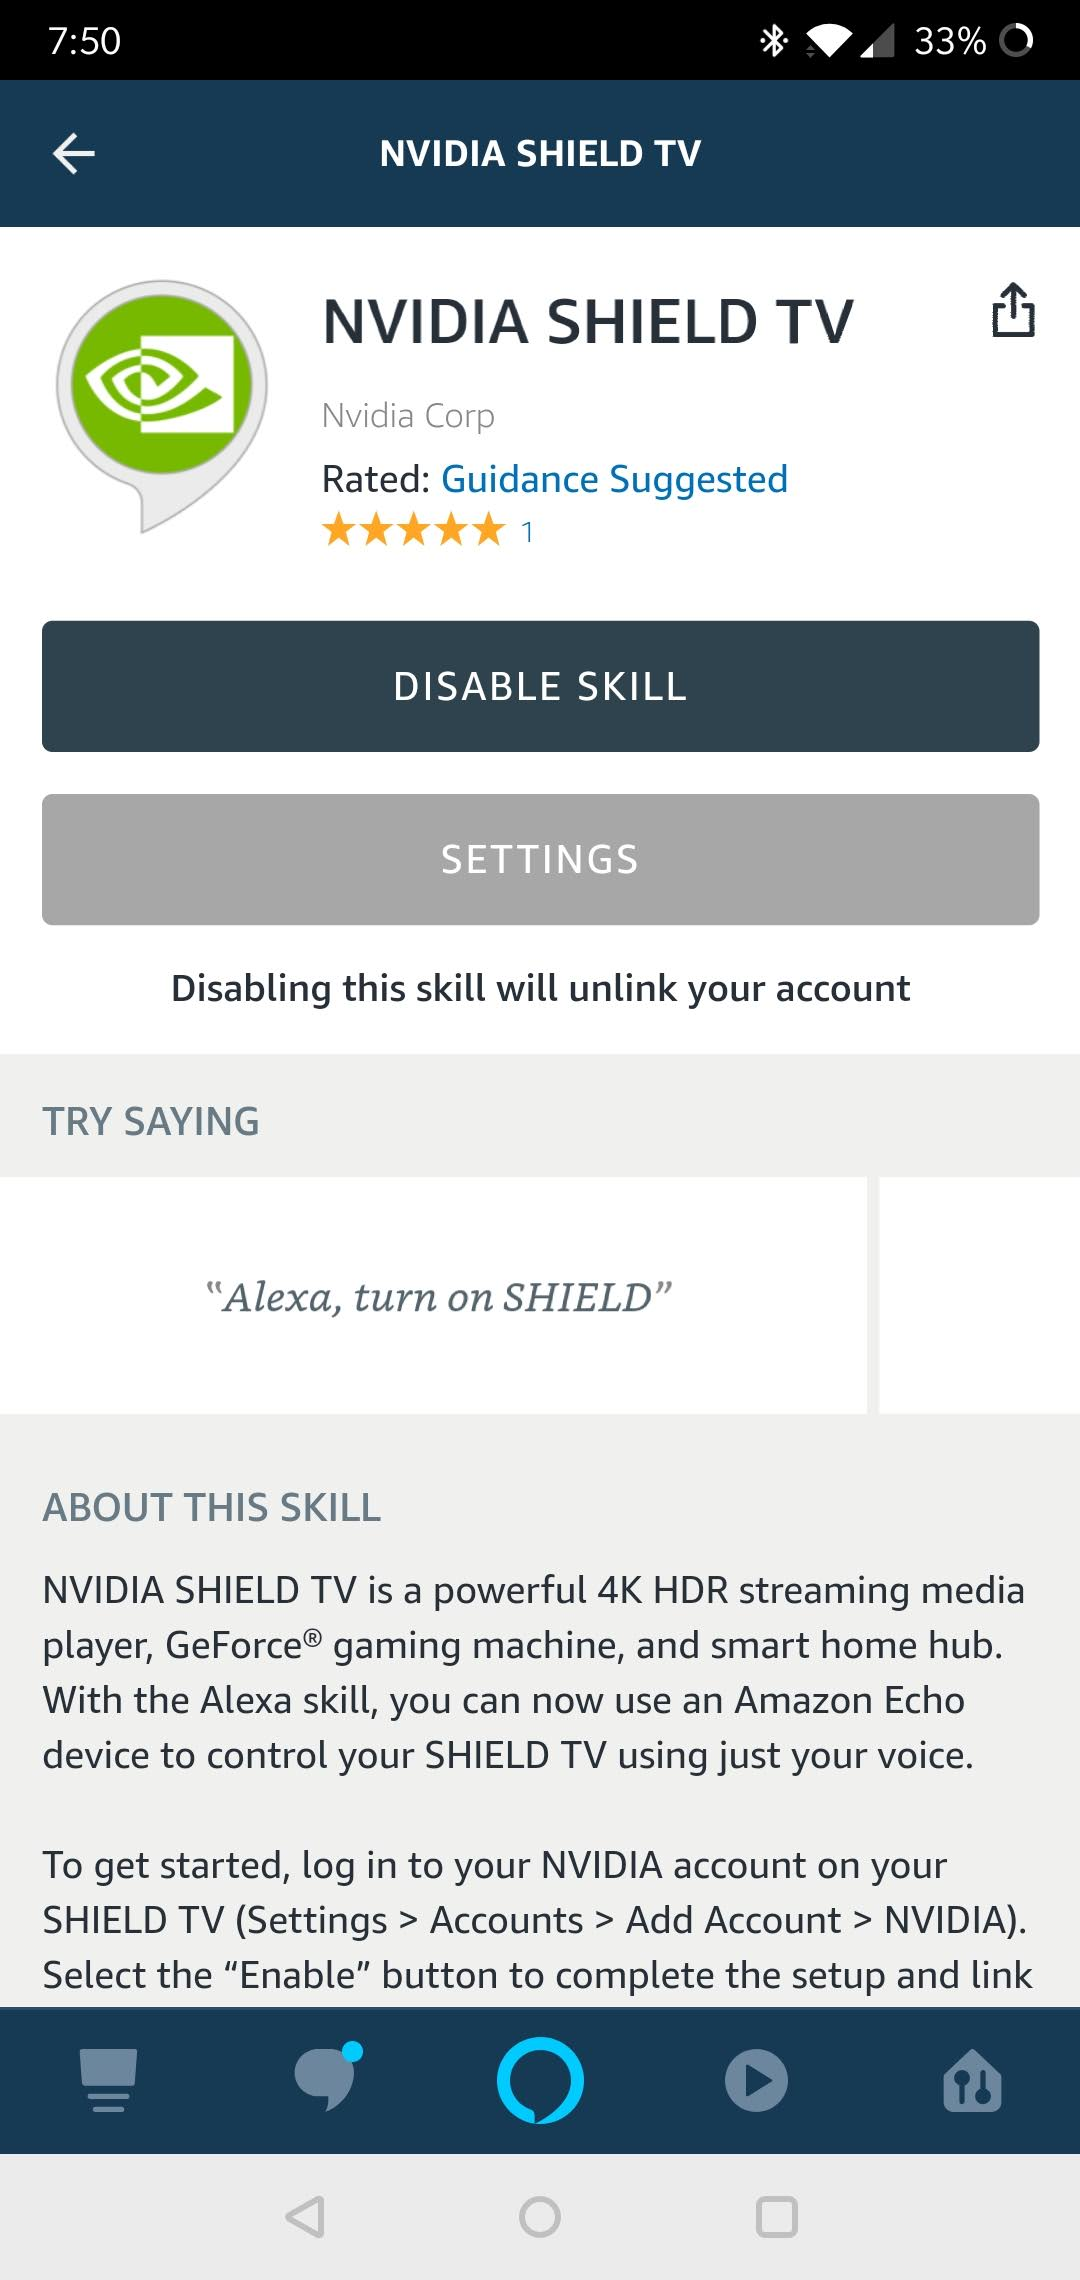 You Can Now Control Your Nvidia Shield Tv With Alexa Theus Pie Face Game To Get Started Open The App Head Over Skills Games And Search For Youll See One Pop Up Called By Corp